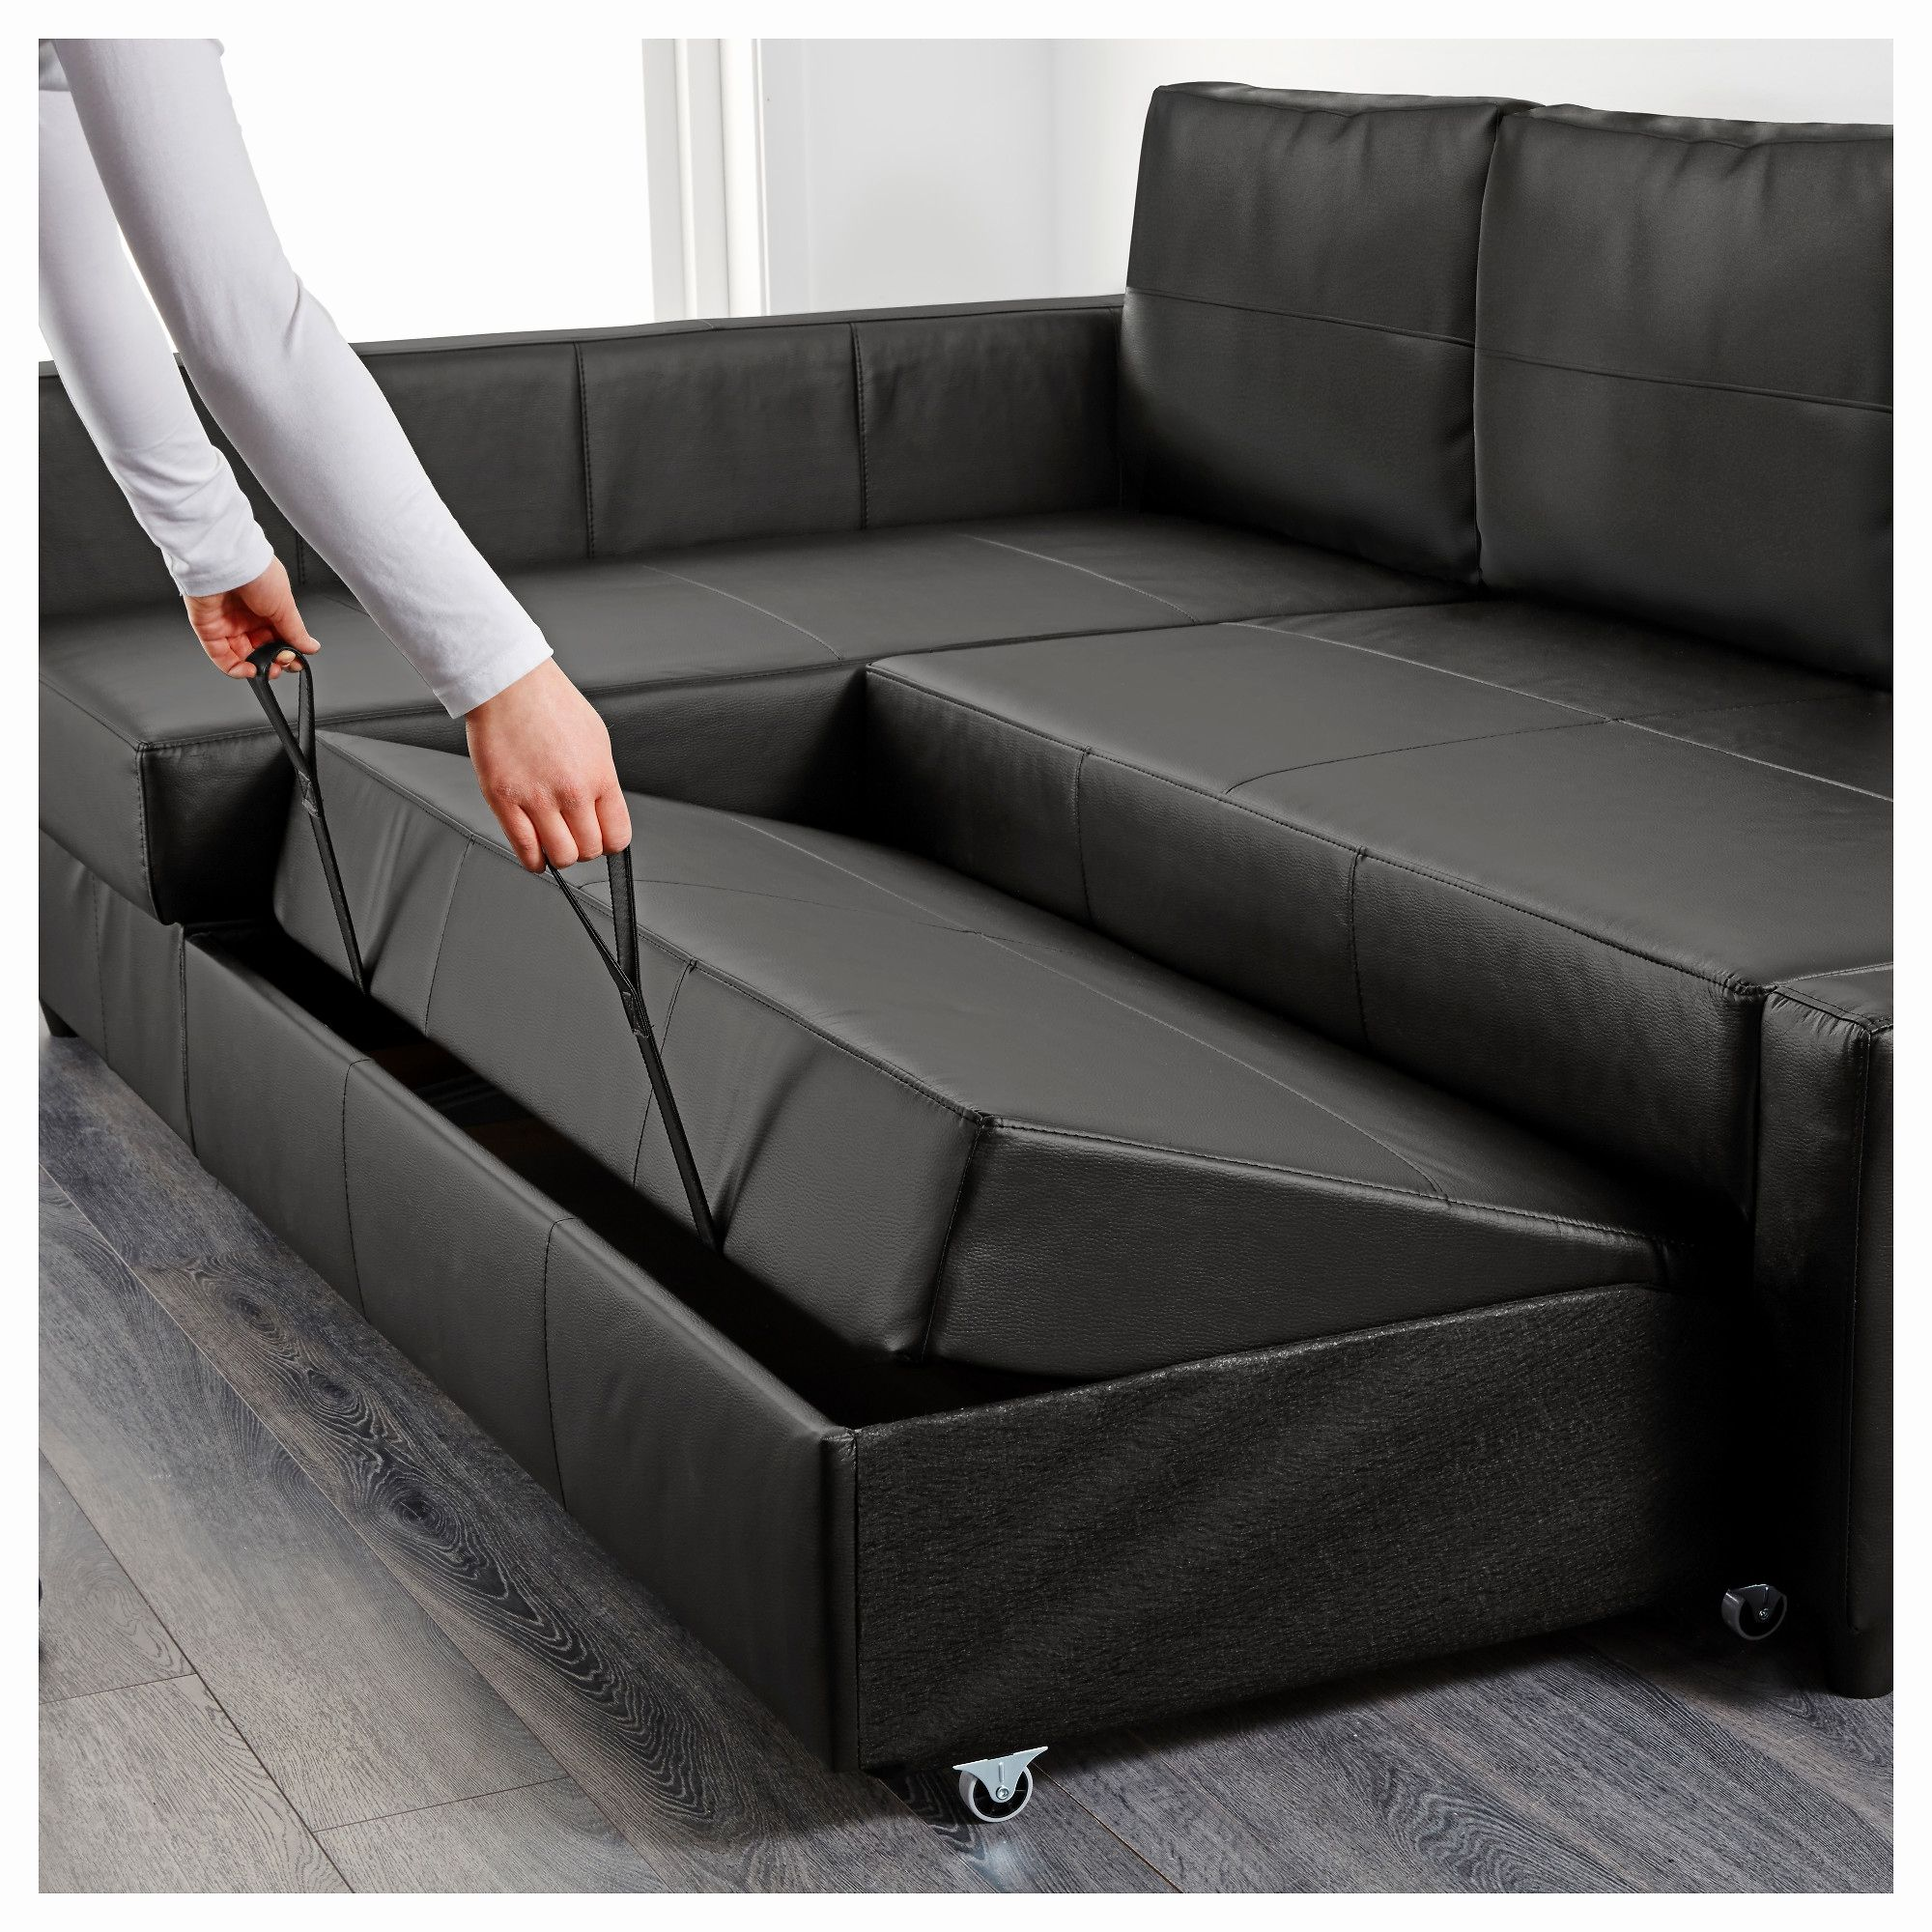 Beautiful Small Corner Leather Sofa Shot Small Corner Leather Sofa Beautiful Sofas Wonderfu Corner Sofa Bed With Storage Sofa Bed With Storage Leather Sofa Bed